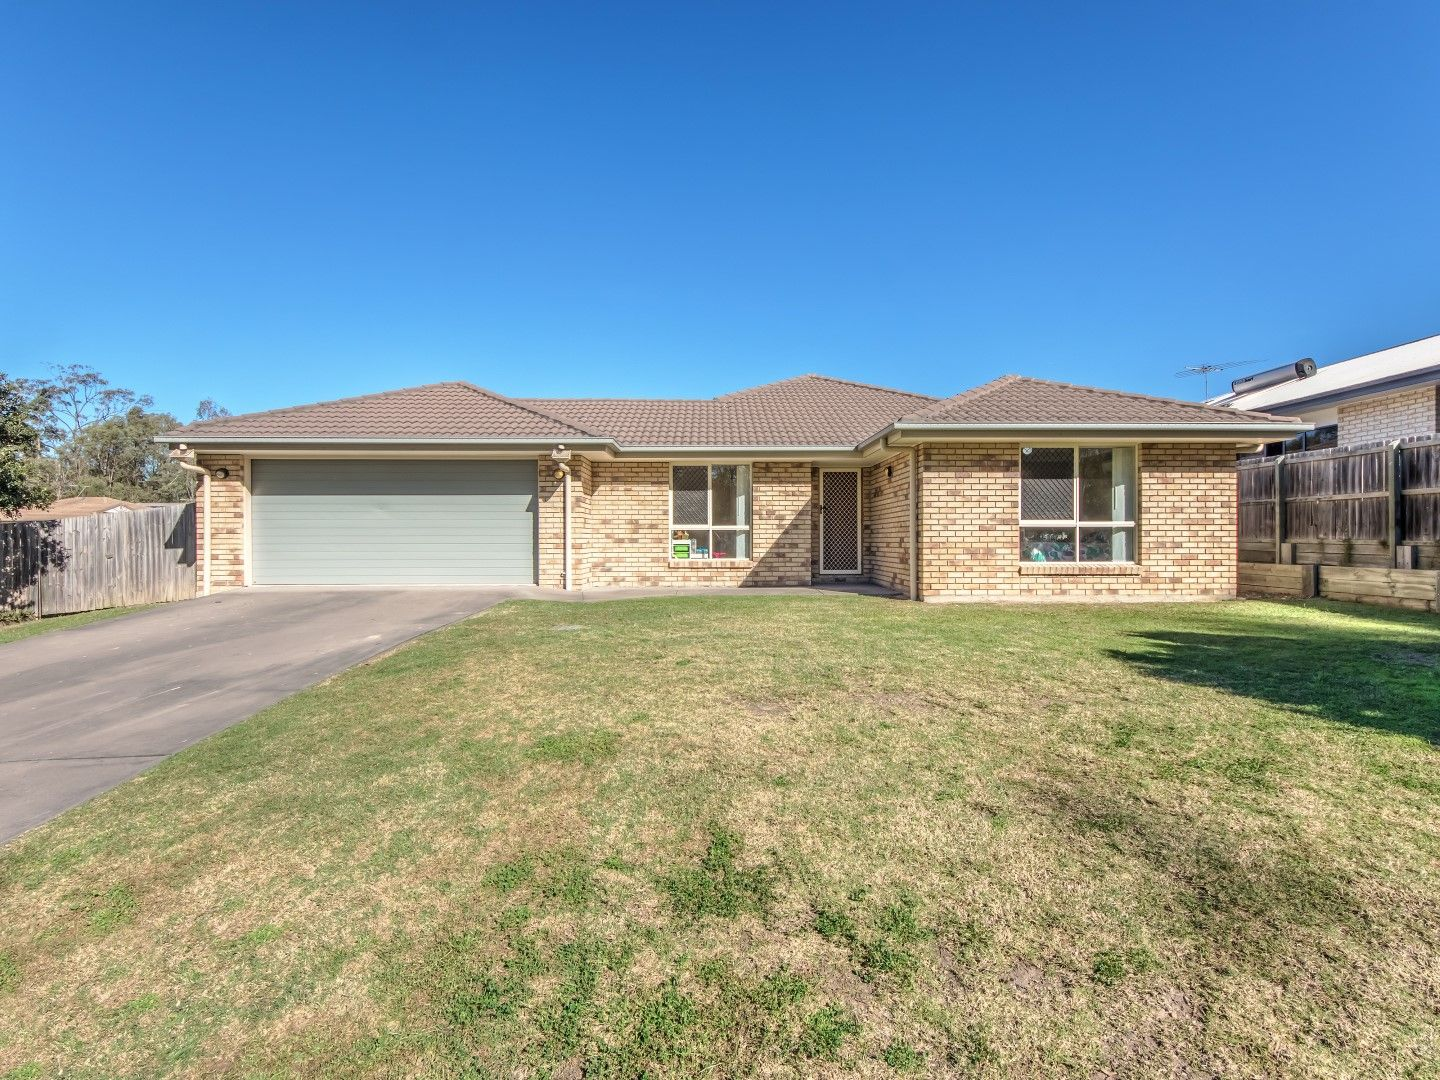 86 Currajong Place, Brassall QLD 4305, Image 0